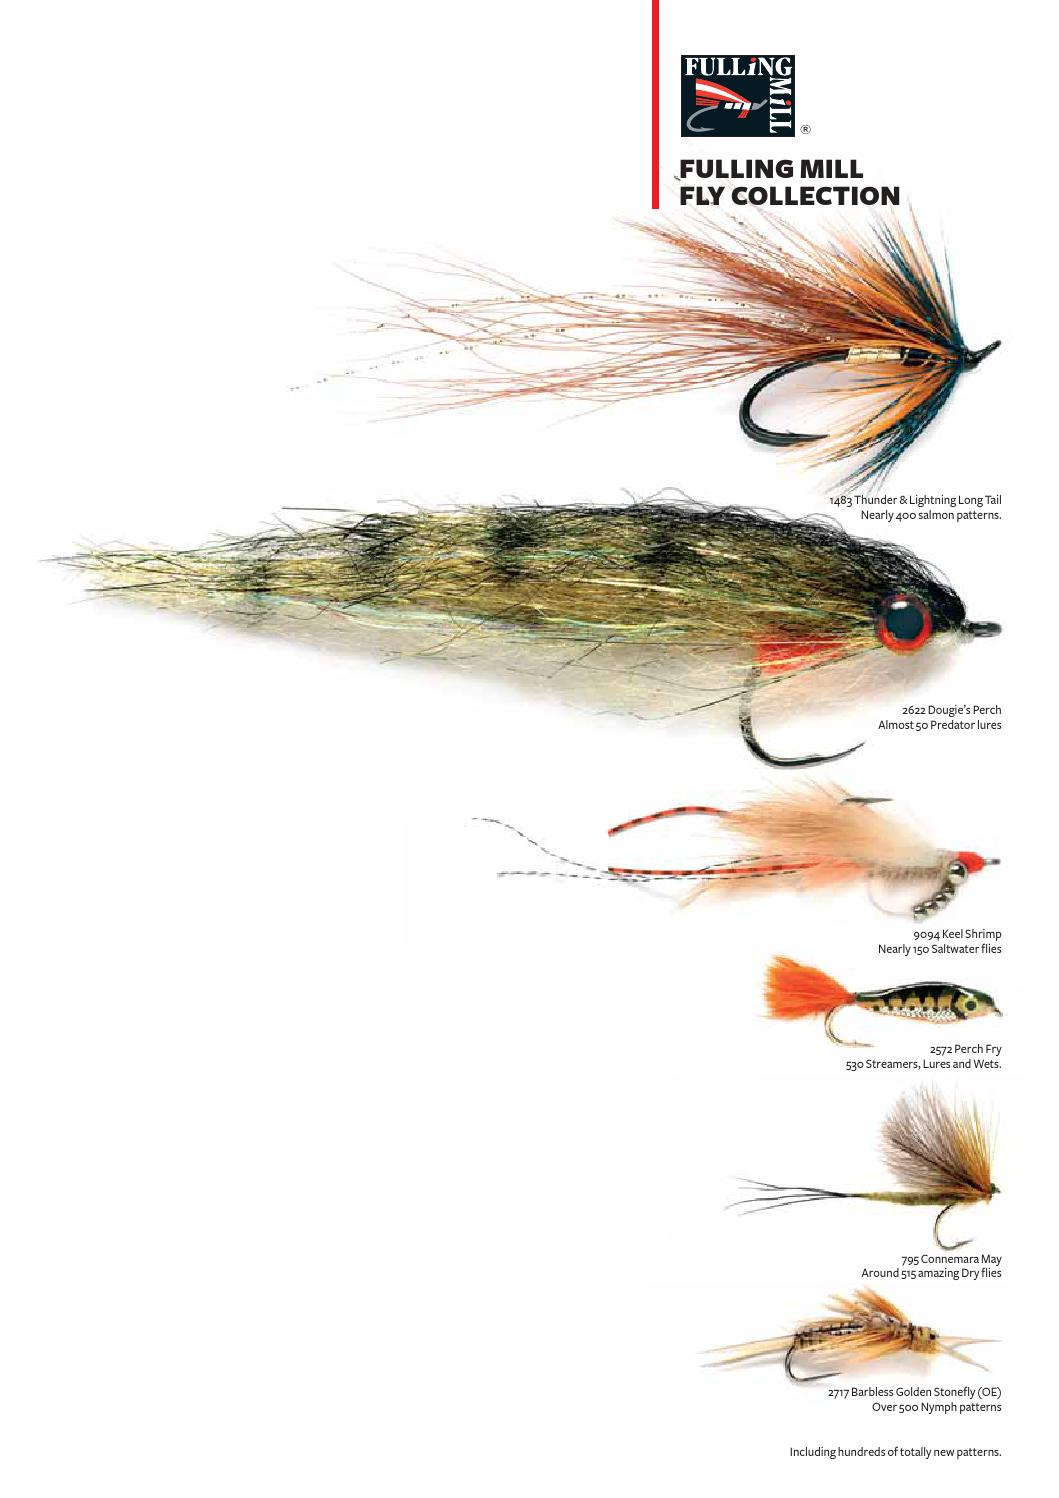 Cat/'s Whisker Trout Flies on Size 10 hooks 5 Christmas Tree Sparkle